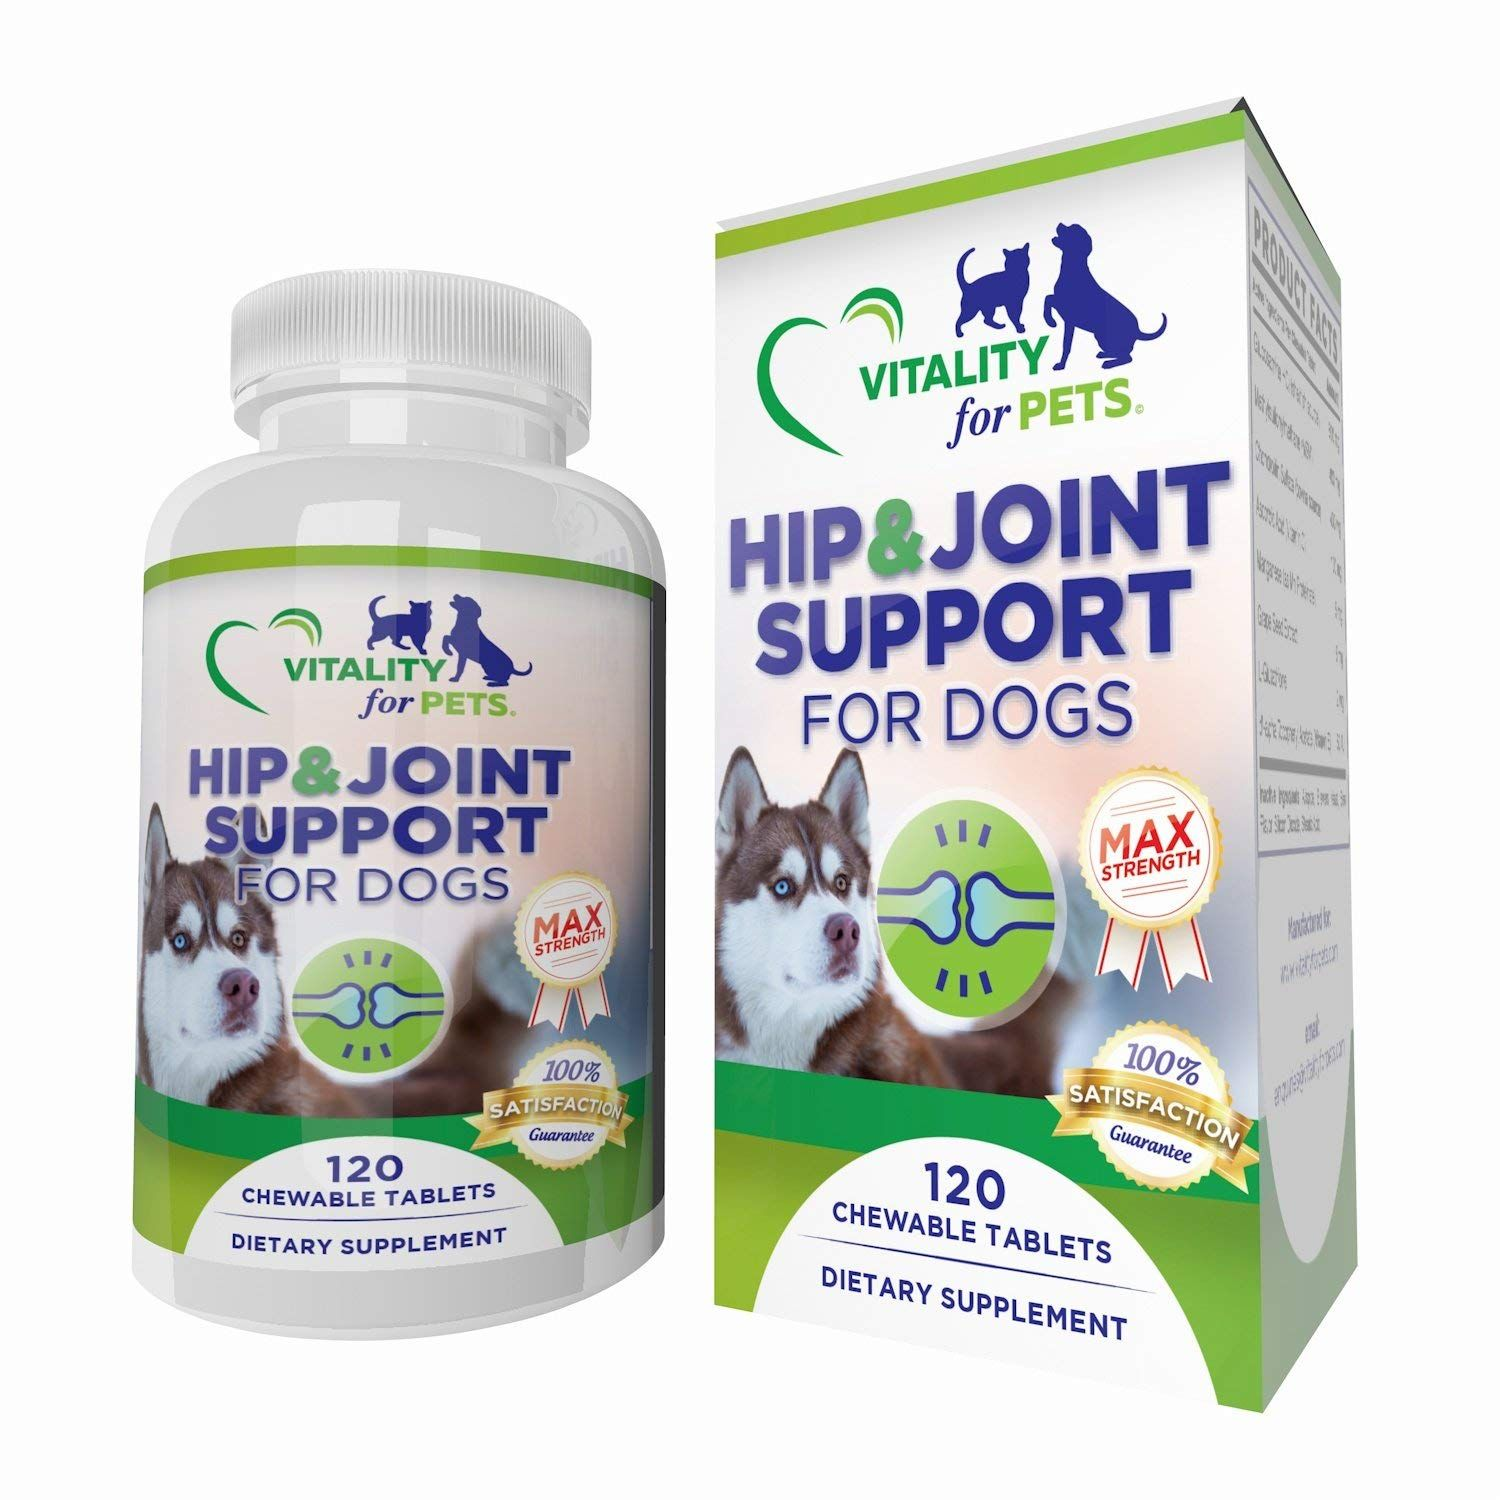 Max Strength Hip And Joint Support For Dogs 120 Chews 1700mg Of Premium Blend Glucosamine C Joint Support Supplements Glucosamine Chondroitin Msm Dog Vitamin